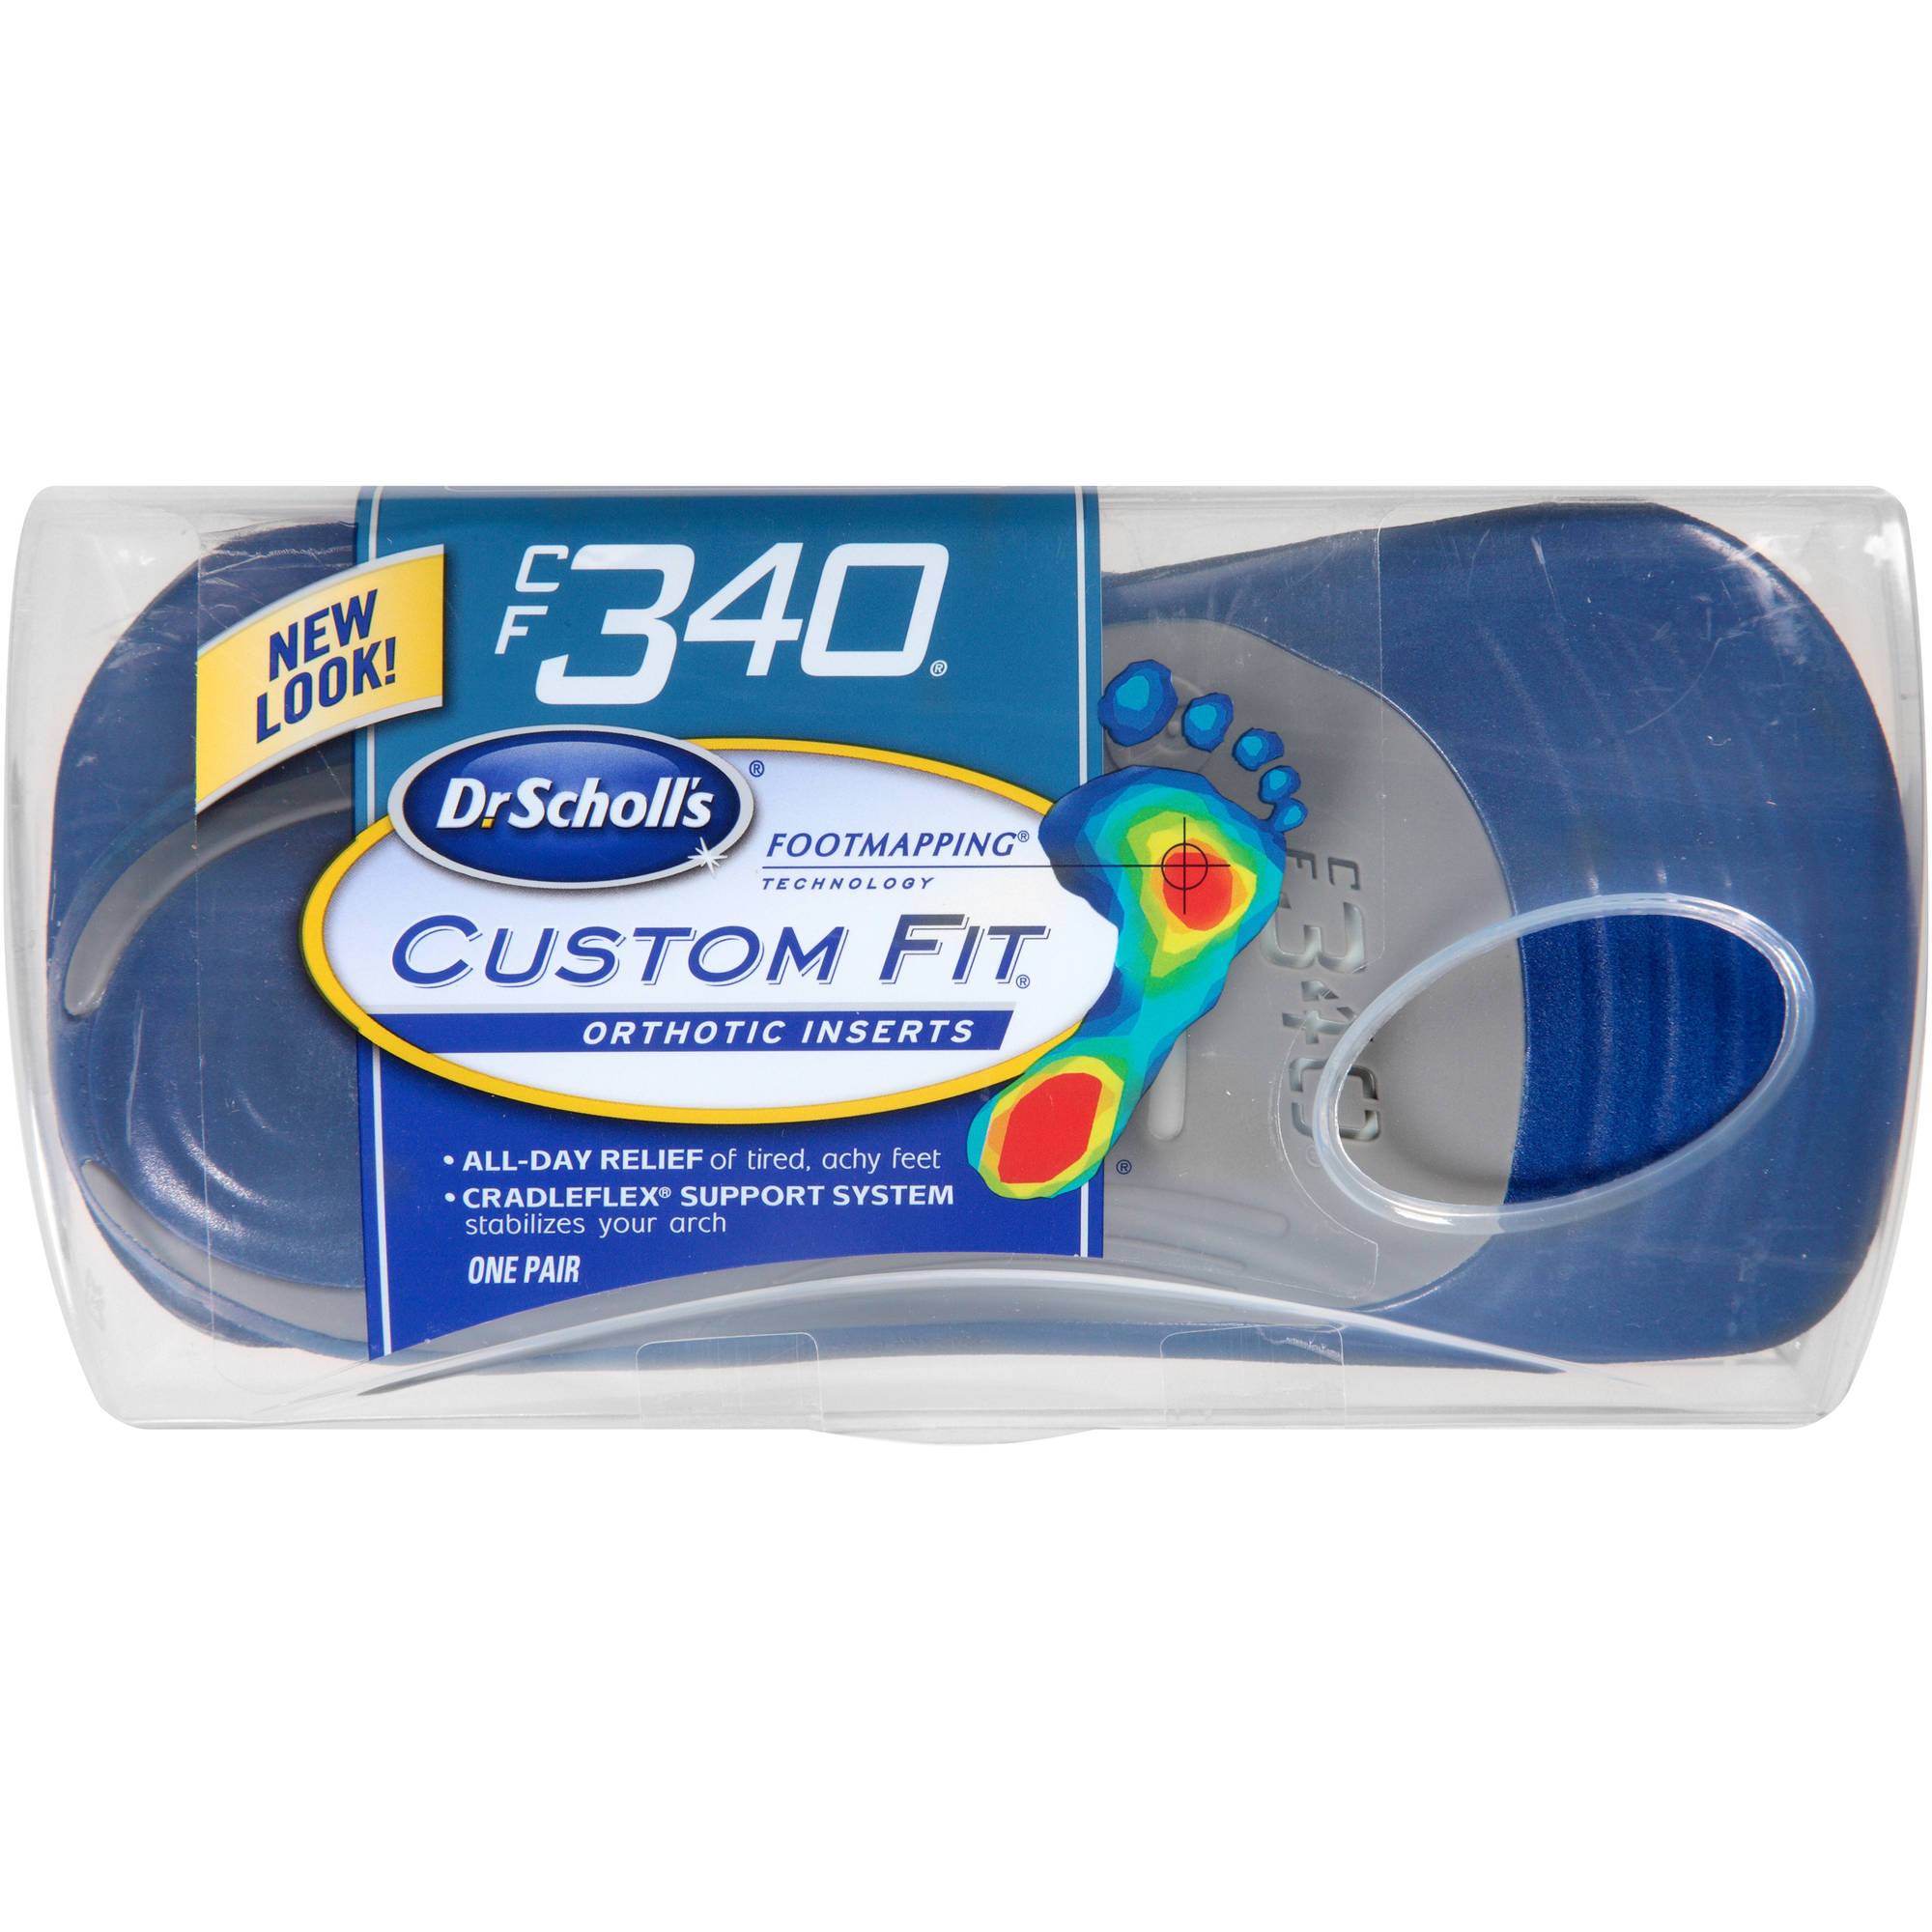 Dr. Scholl's Custom Fit CF340 Orthotic Inserts, 1 pr